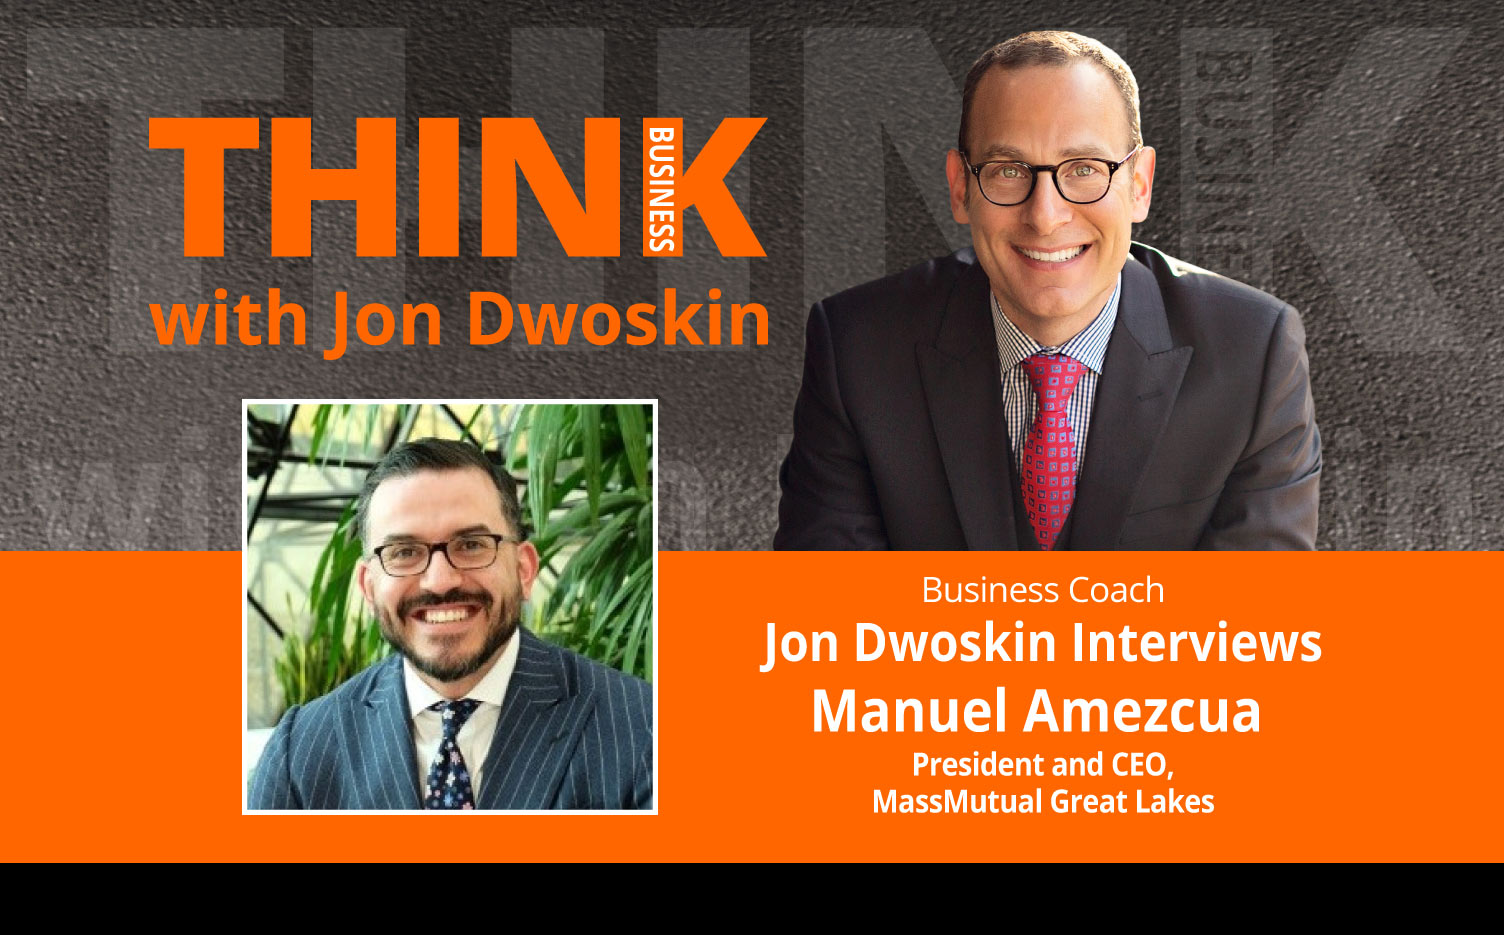 THINK Business Podcast: Jon Dwoskin Interviews Manuel Amezcua, President and CEO, MassMutual Great Lakes